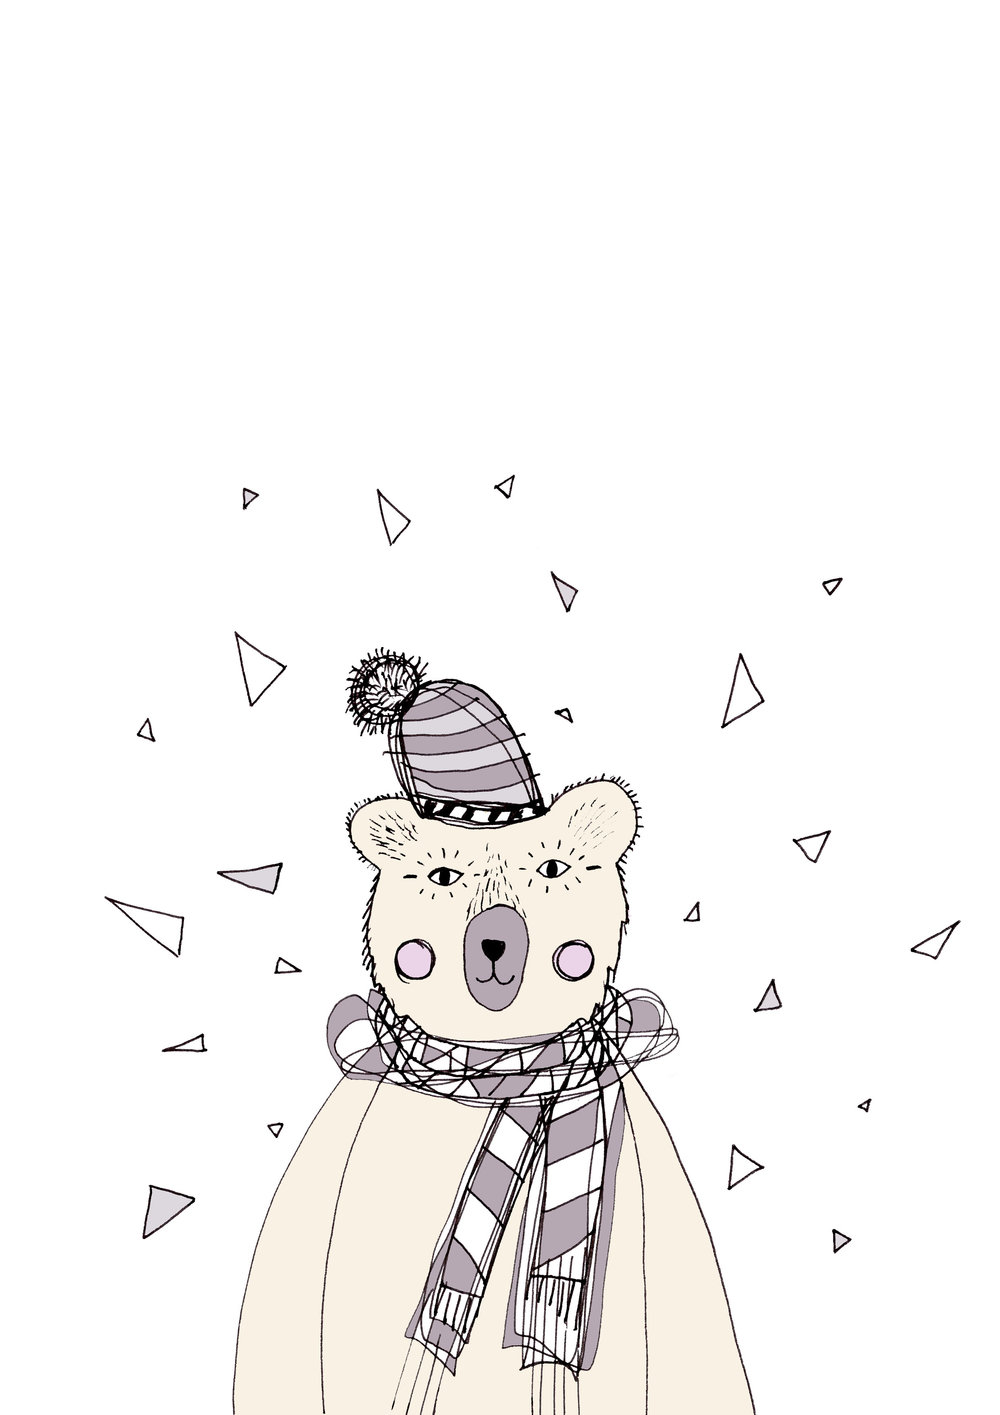 Cold bear free wallpaper download by Laura Bei